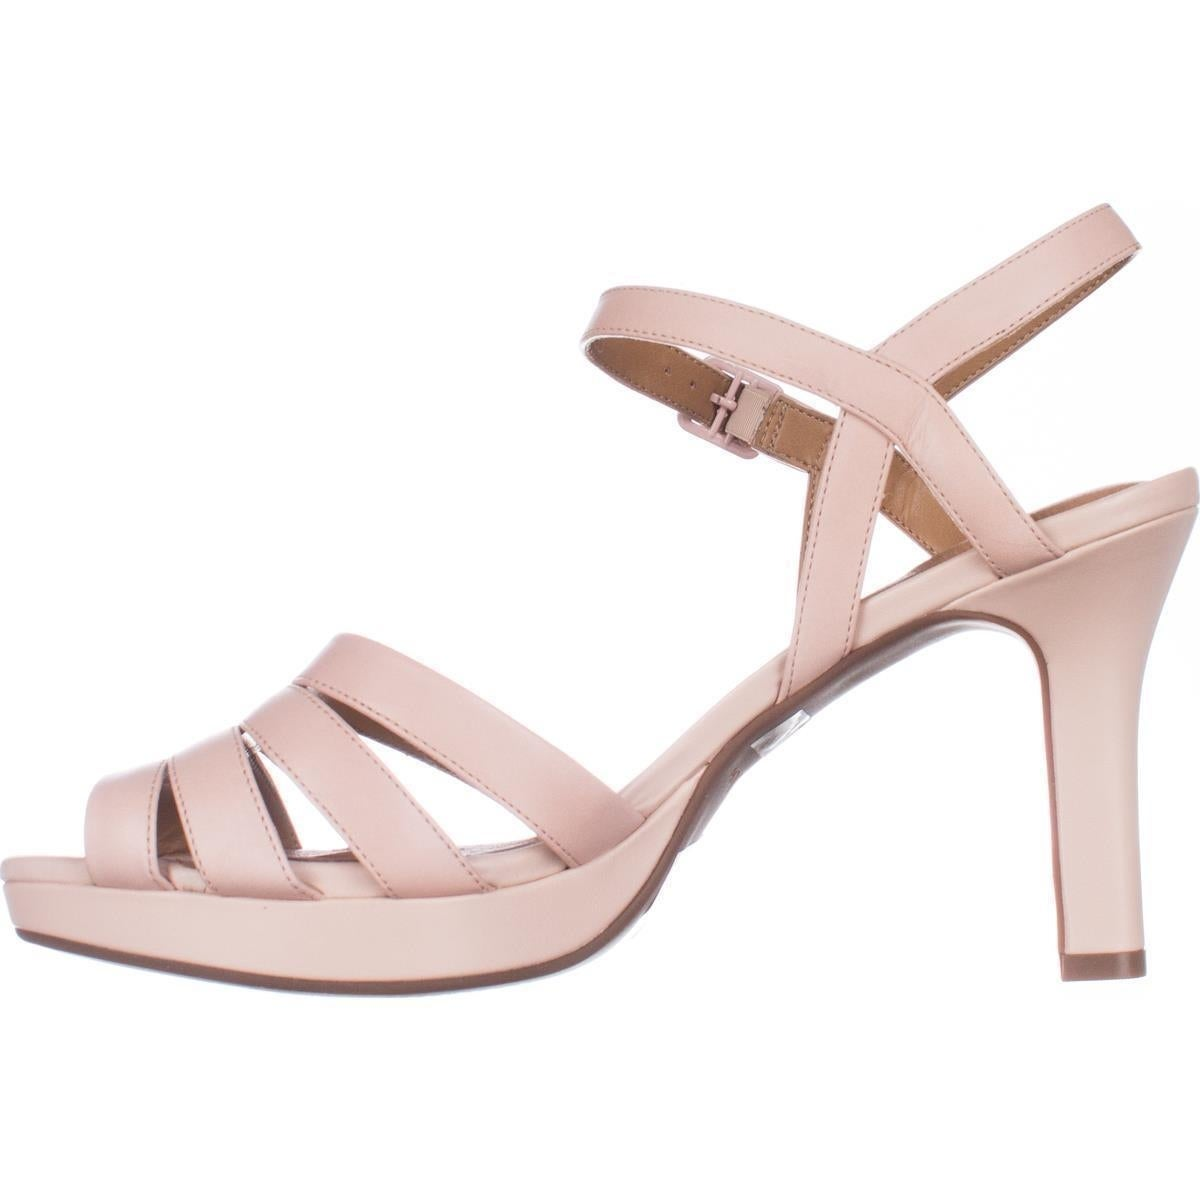 d98ebb7a5 Shop Clarks Mayra Poppy Ankle Strap Platfrom Sandals